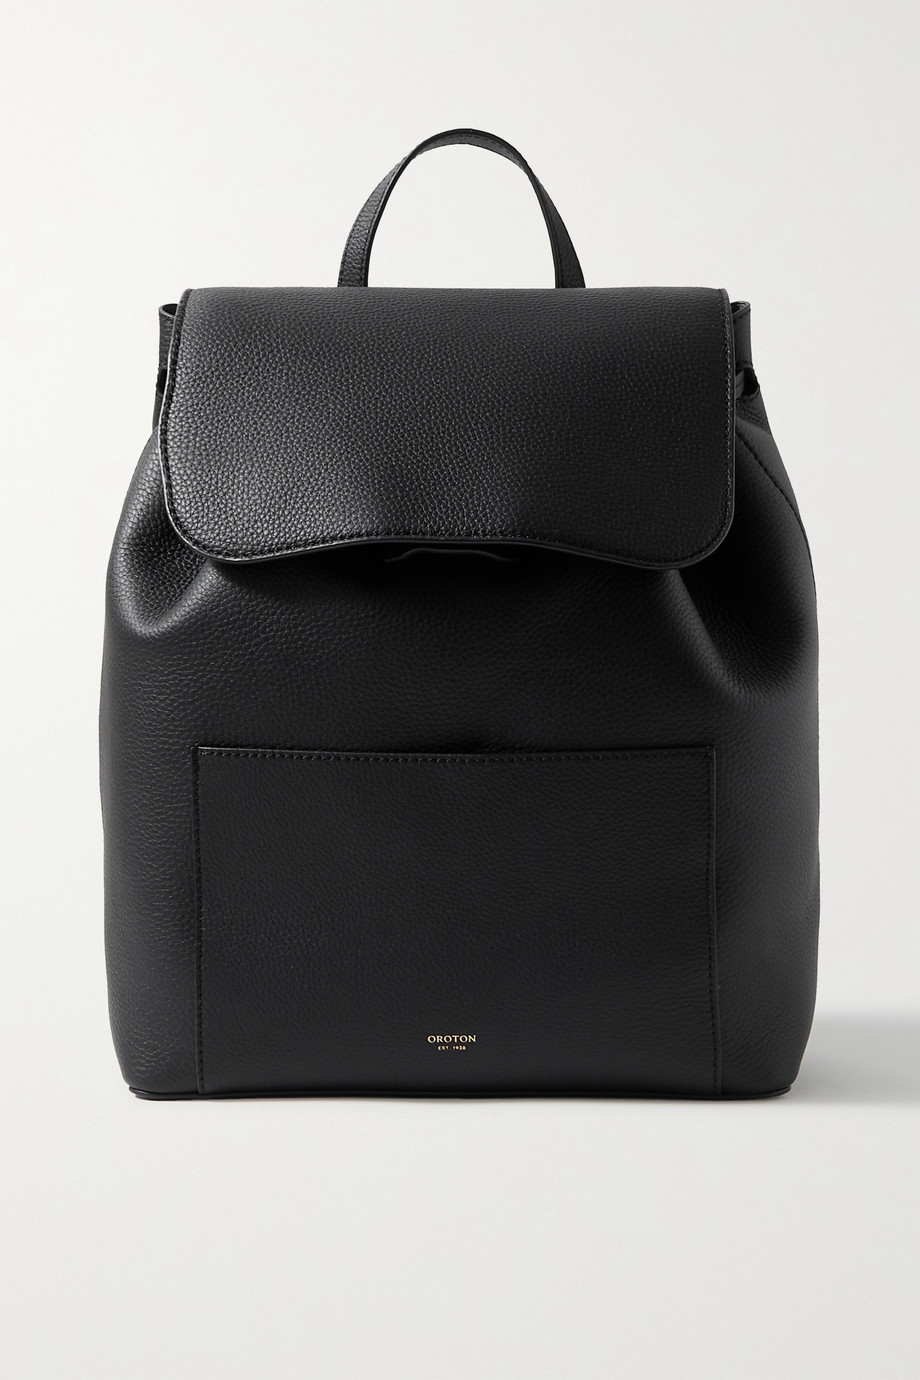 Oroton Duo textured-leather backpack